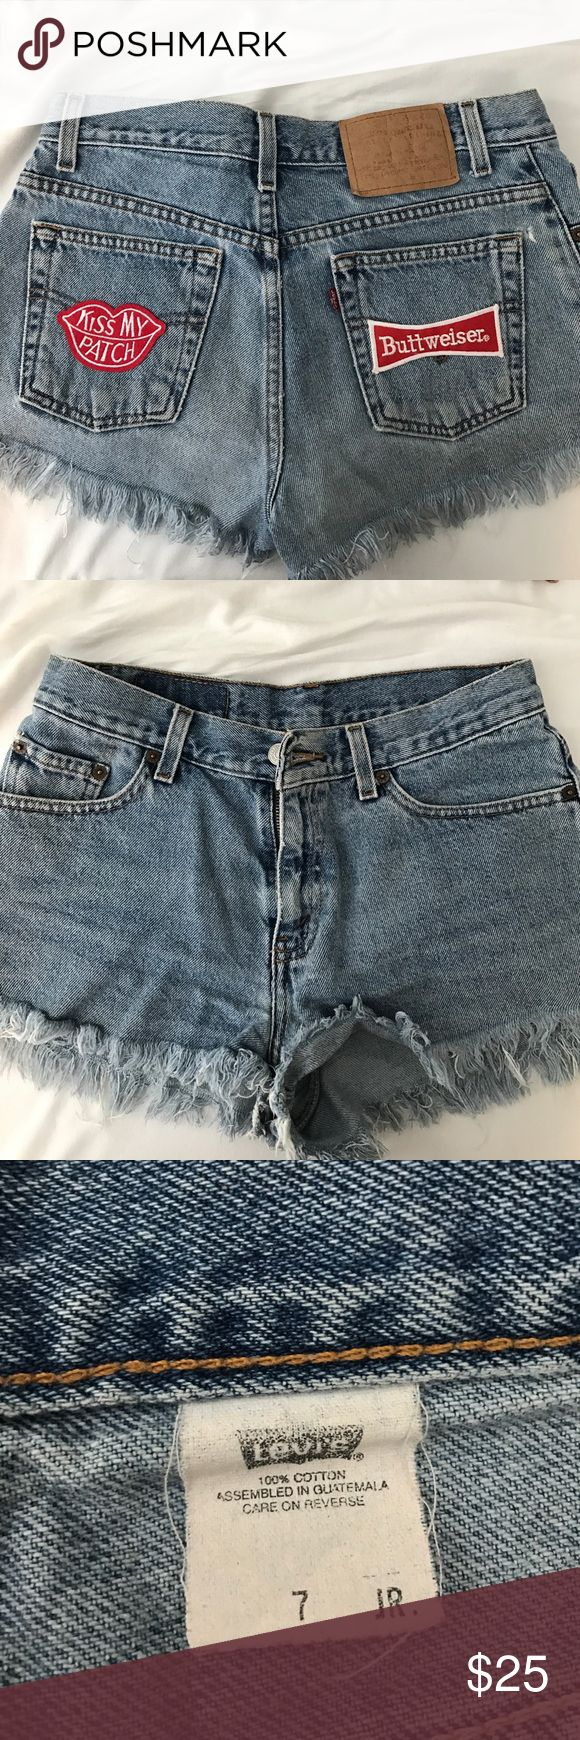 Homemade vintage levis shorts Frayed bottom with two patches on the pockets, buttweiser, kiss my patch Levi's Shorts Jean Shorts